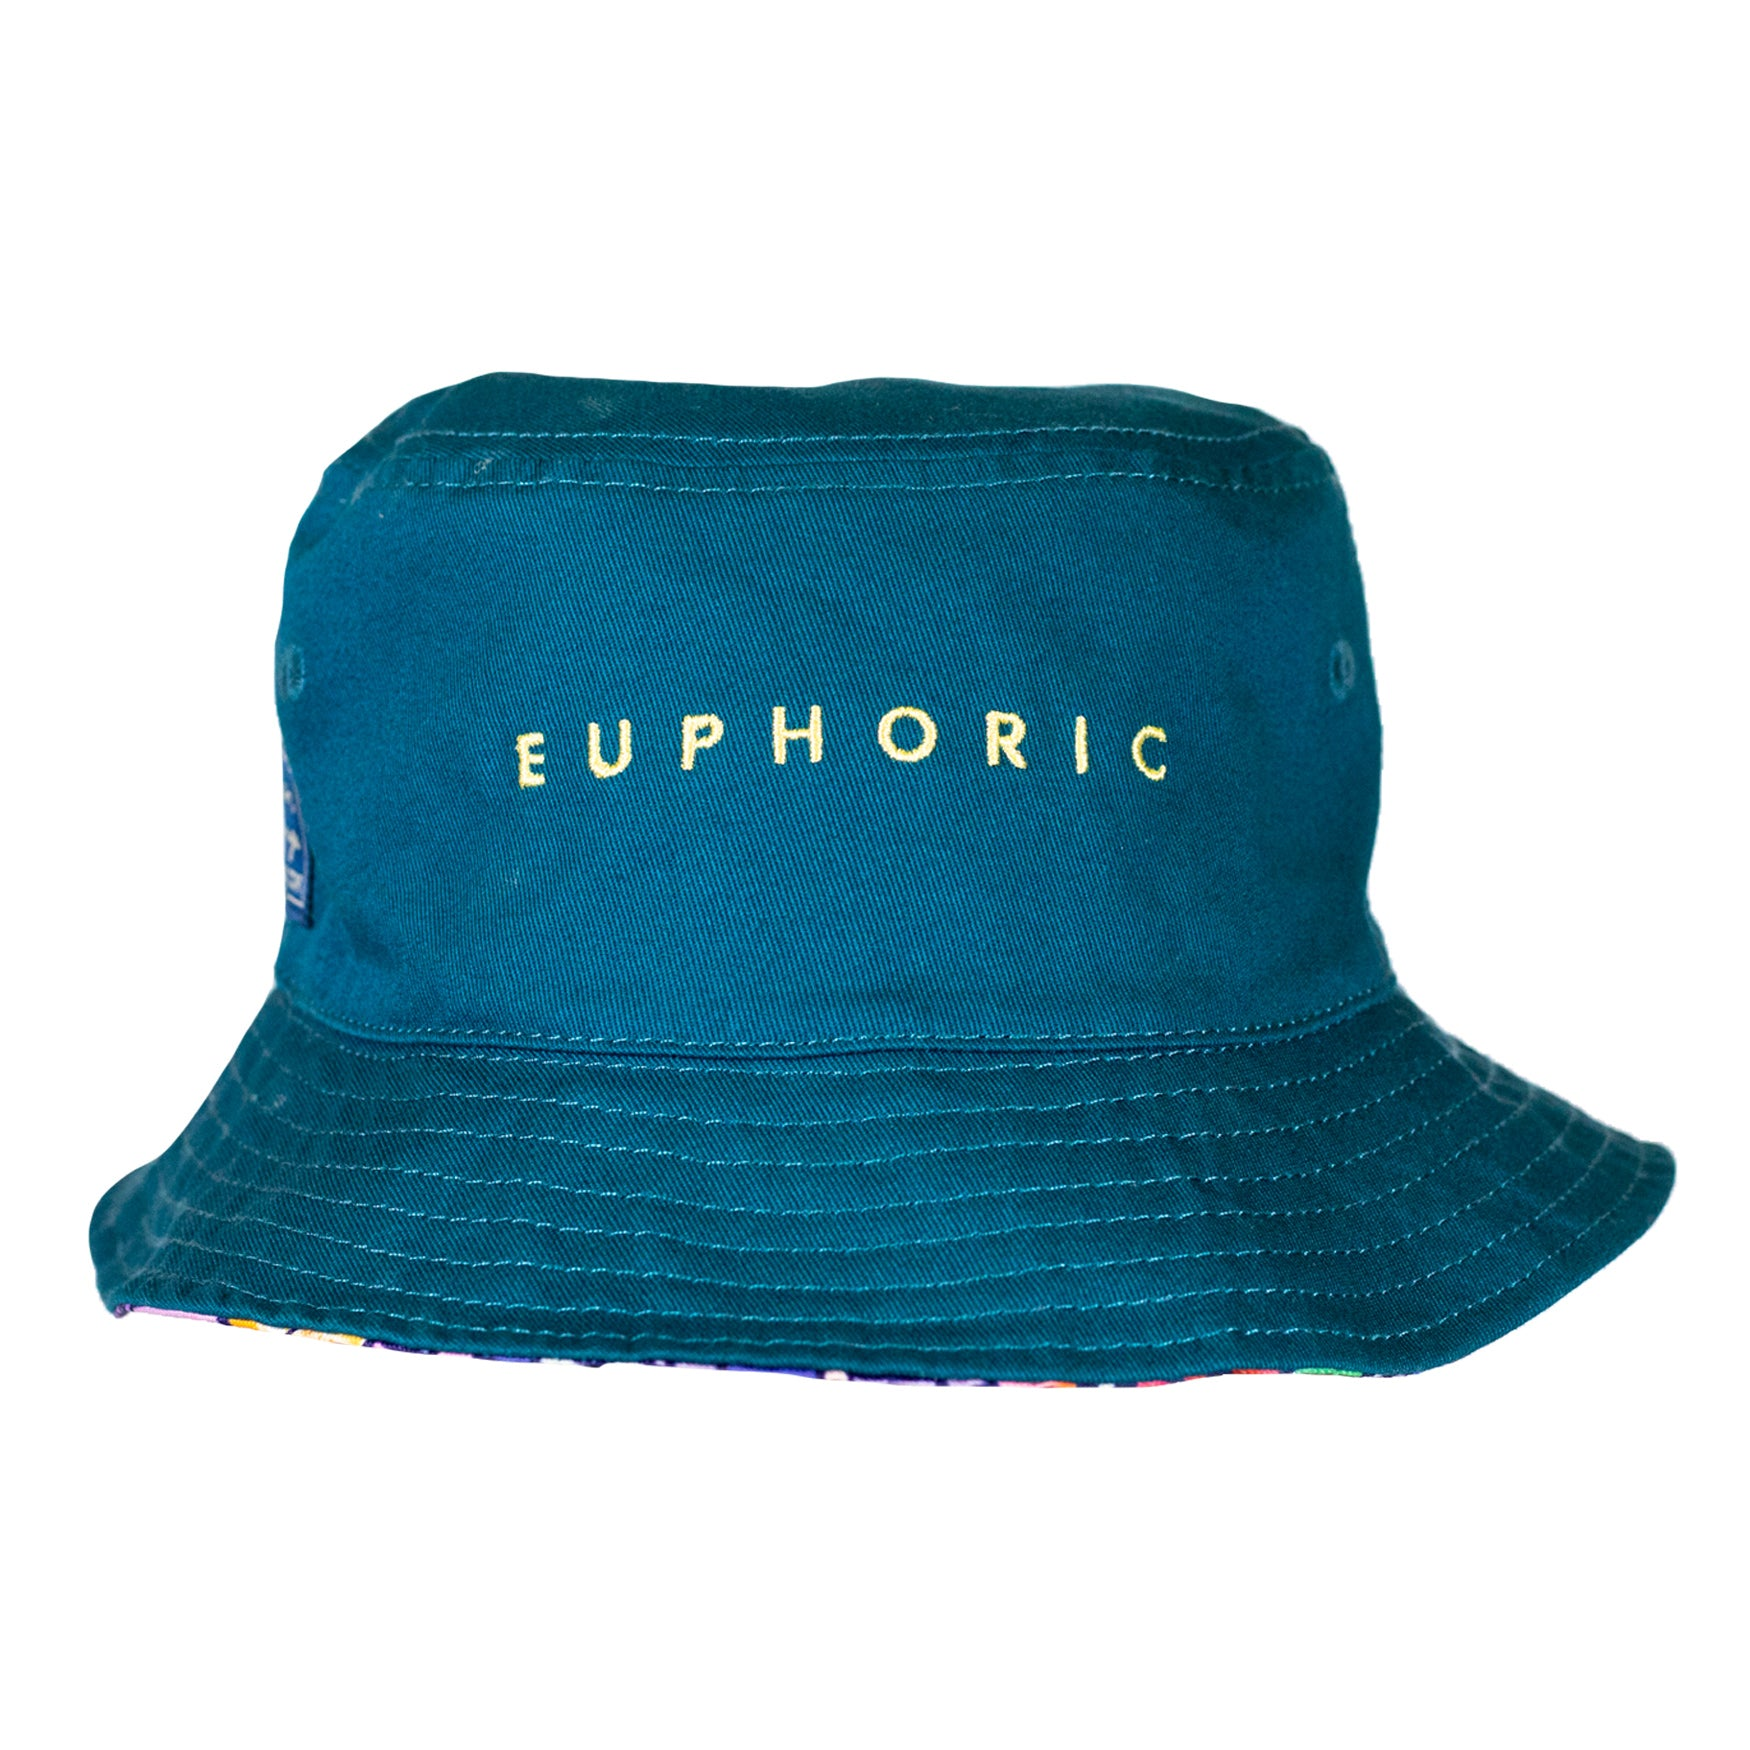 Euphoric Bucket - Reversible